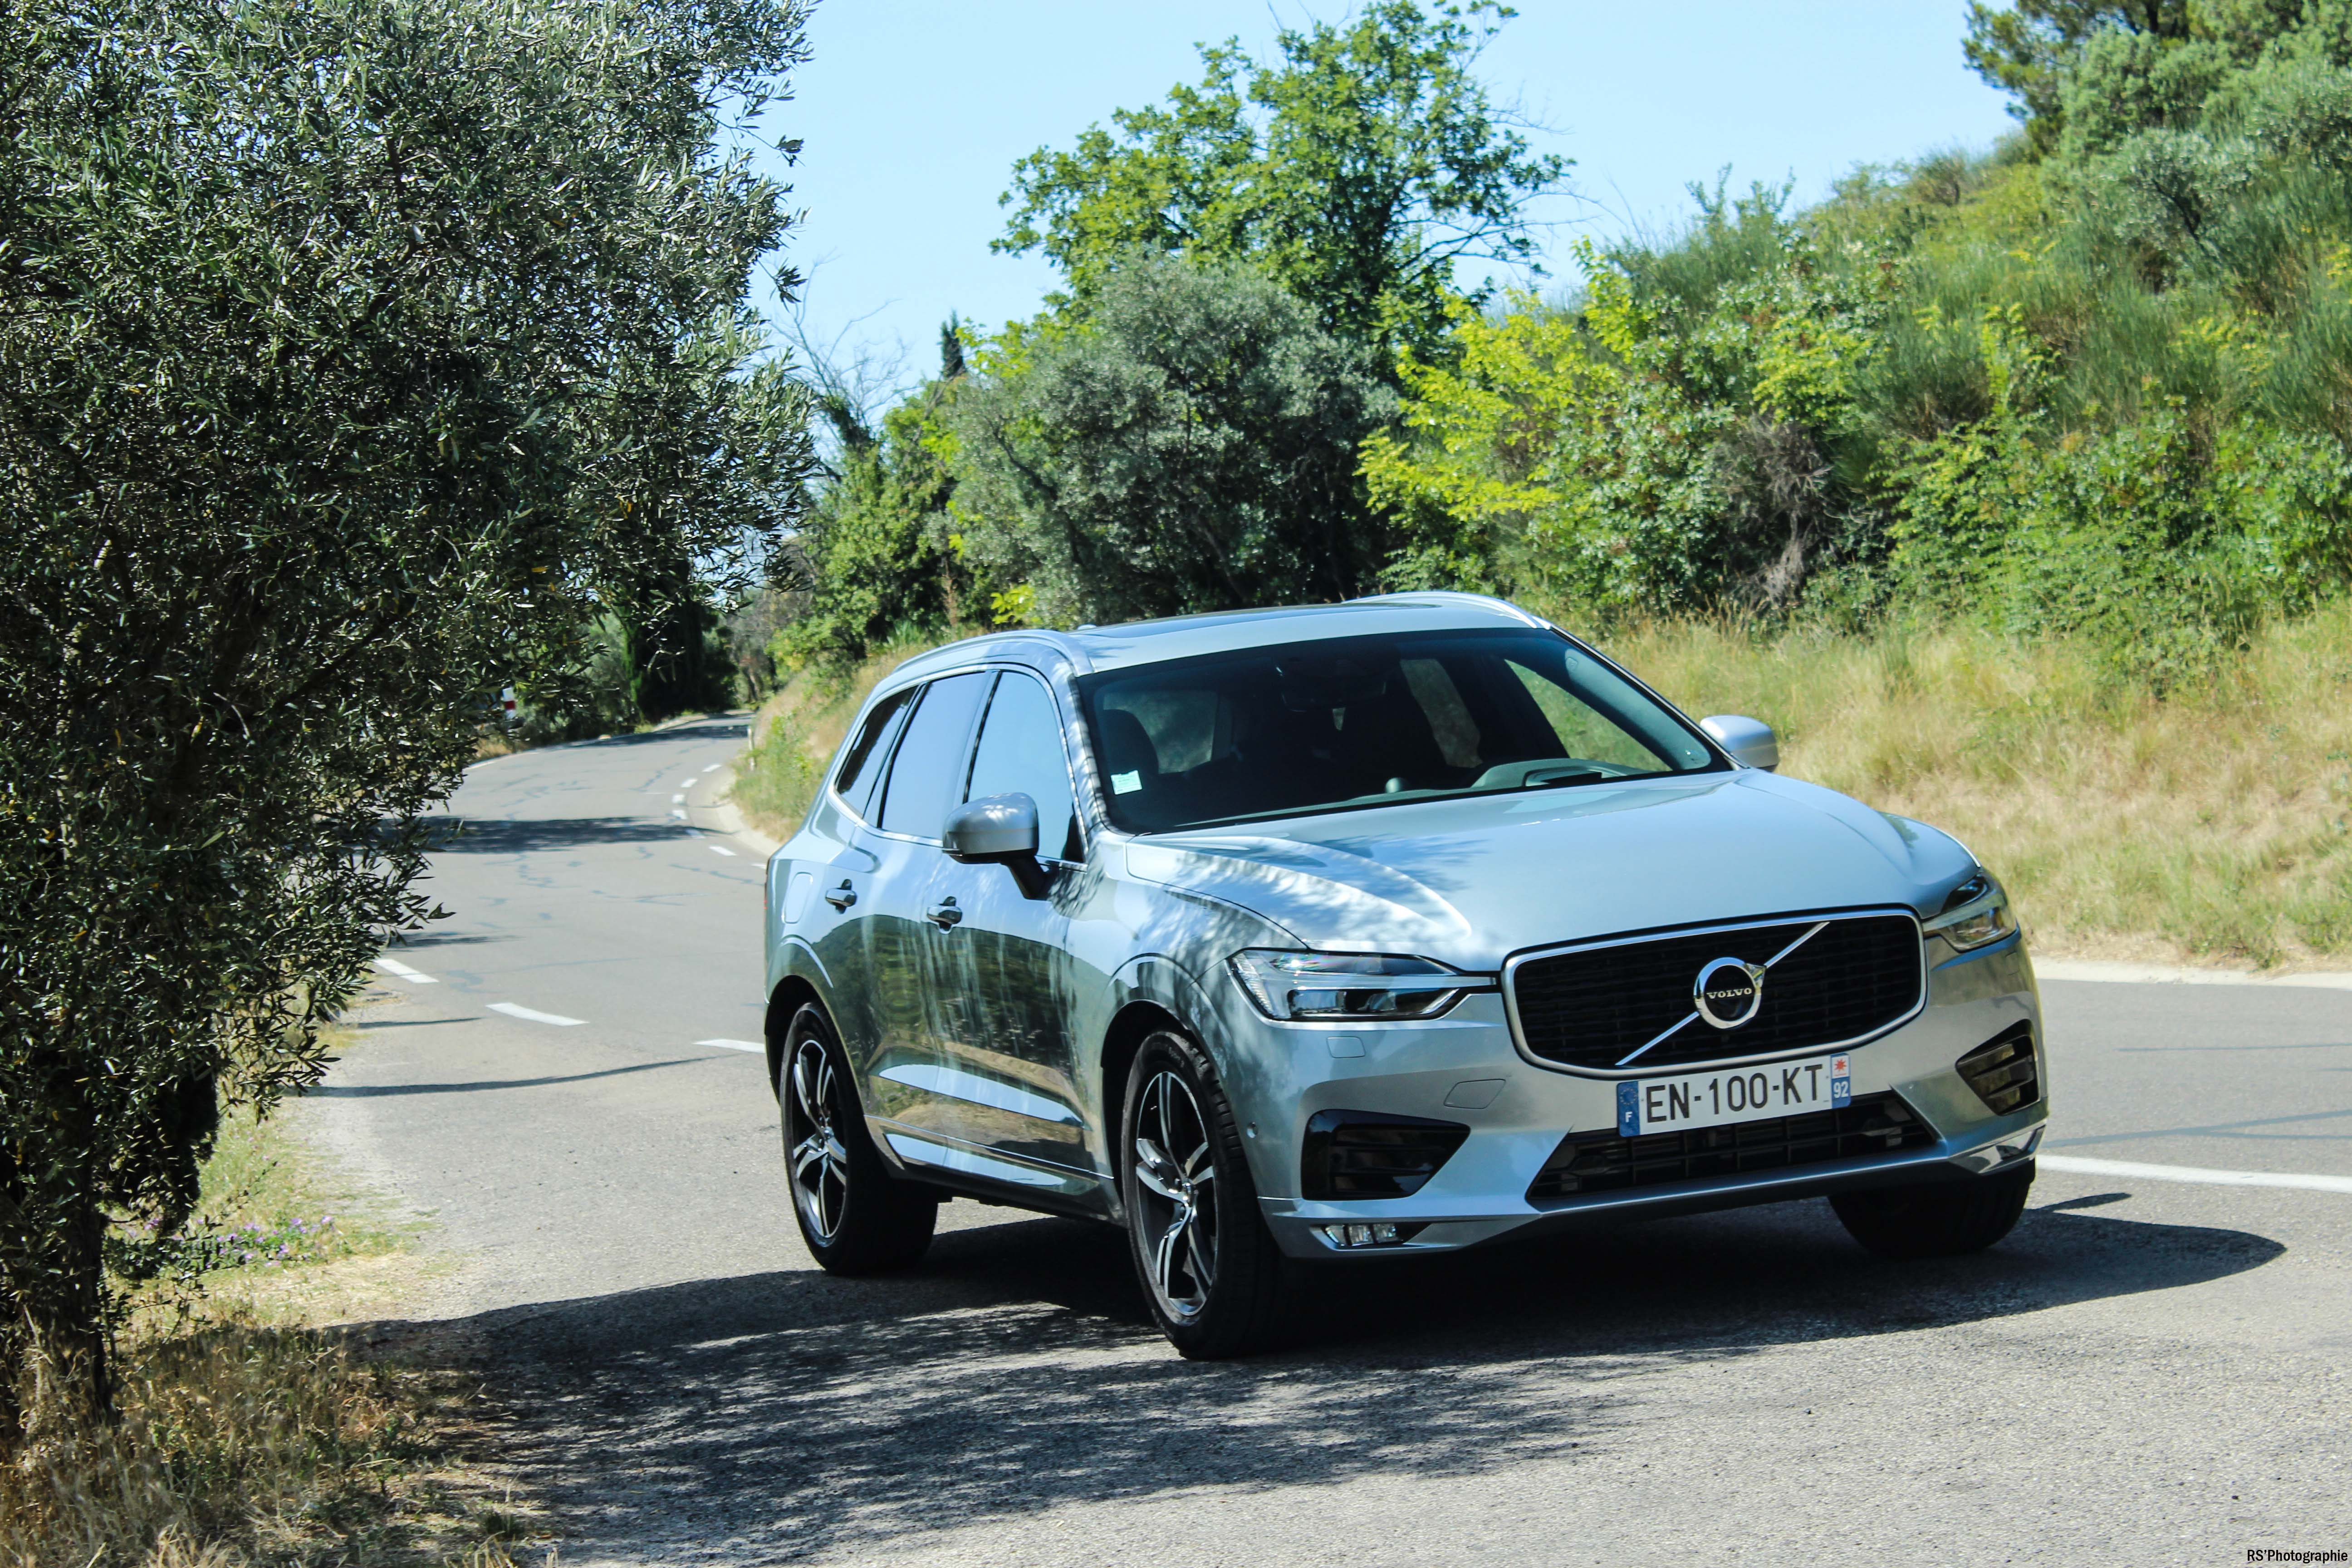 OpéVolvo8-volvo-xc60-avant-front-Arnaud Demasier-RSPhotographie